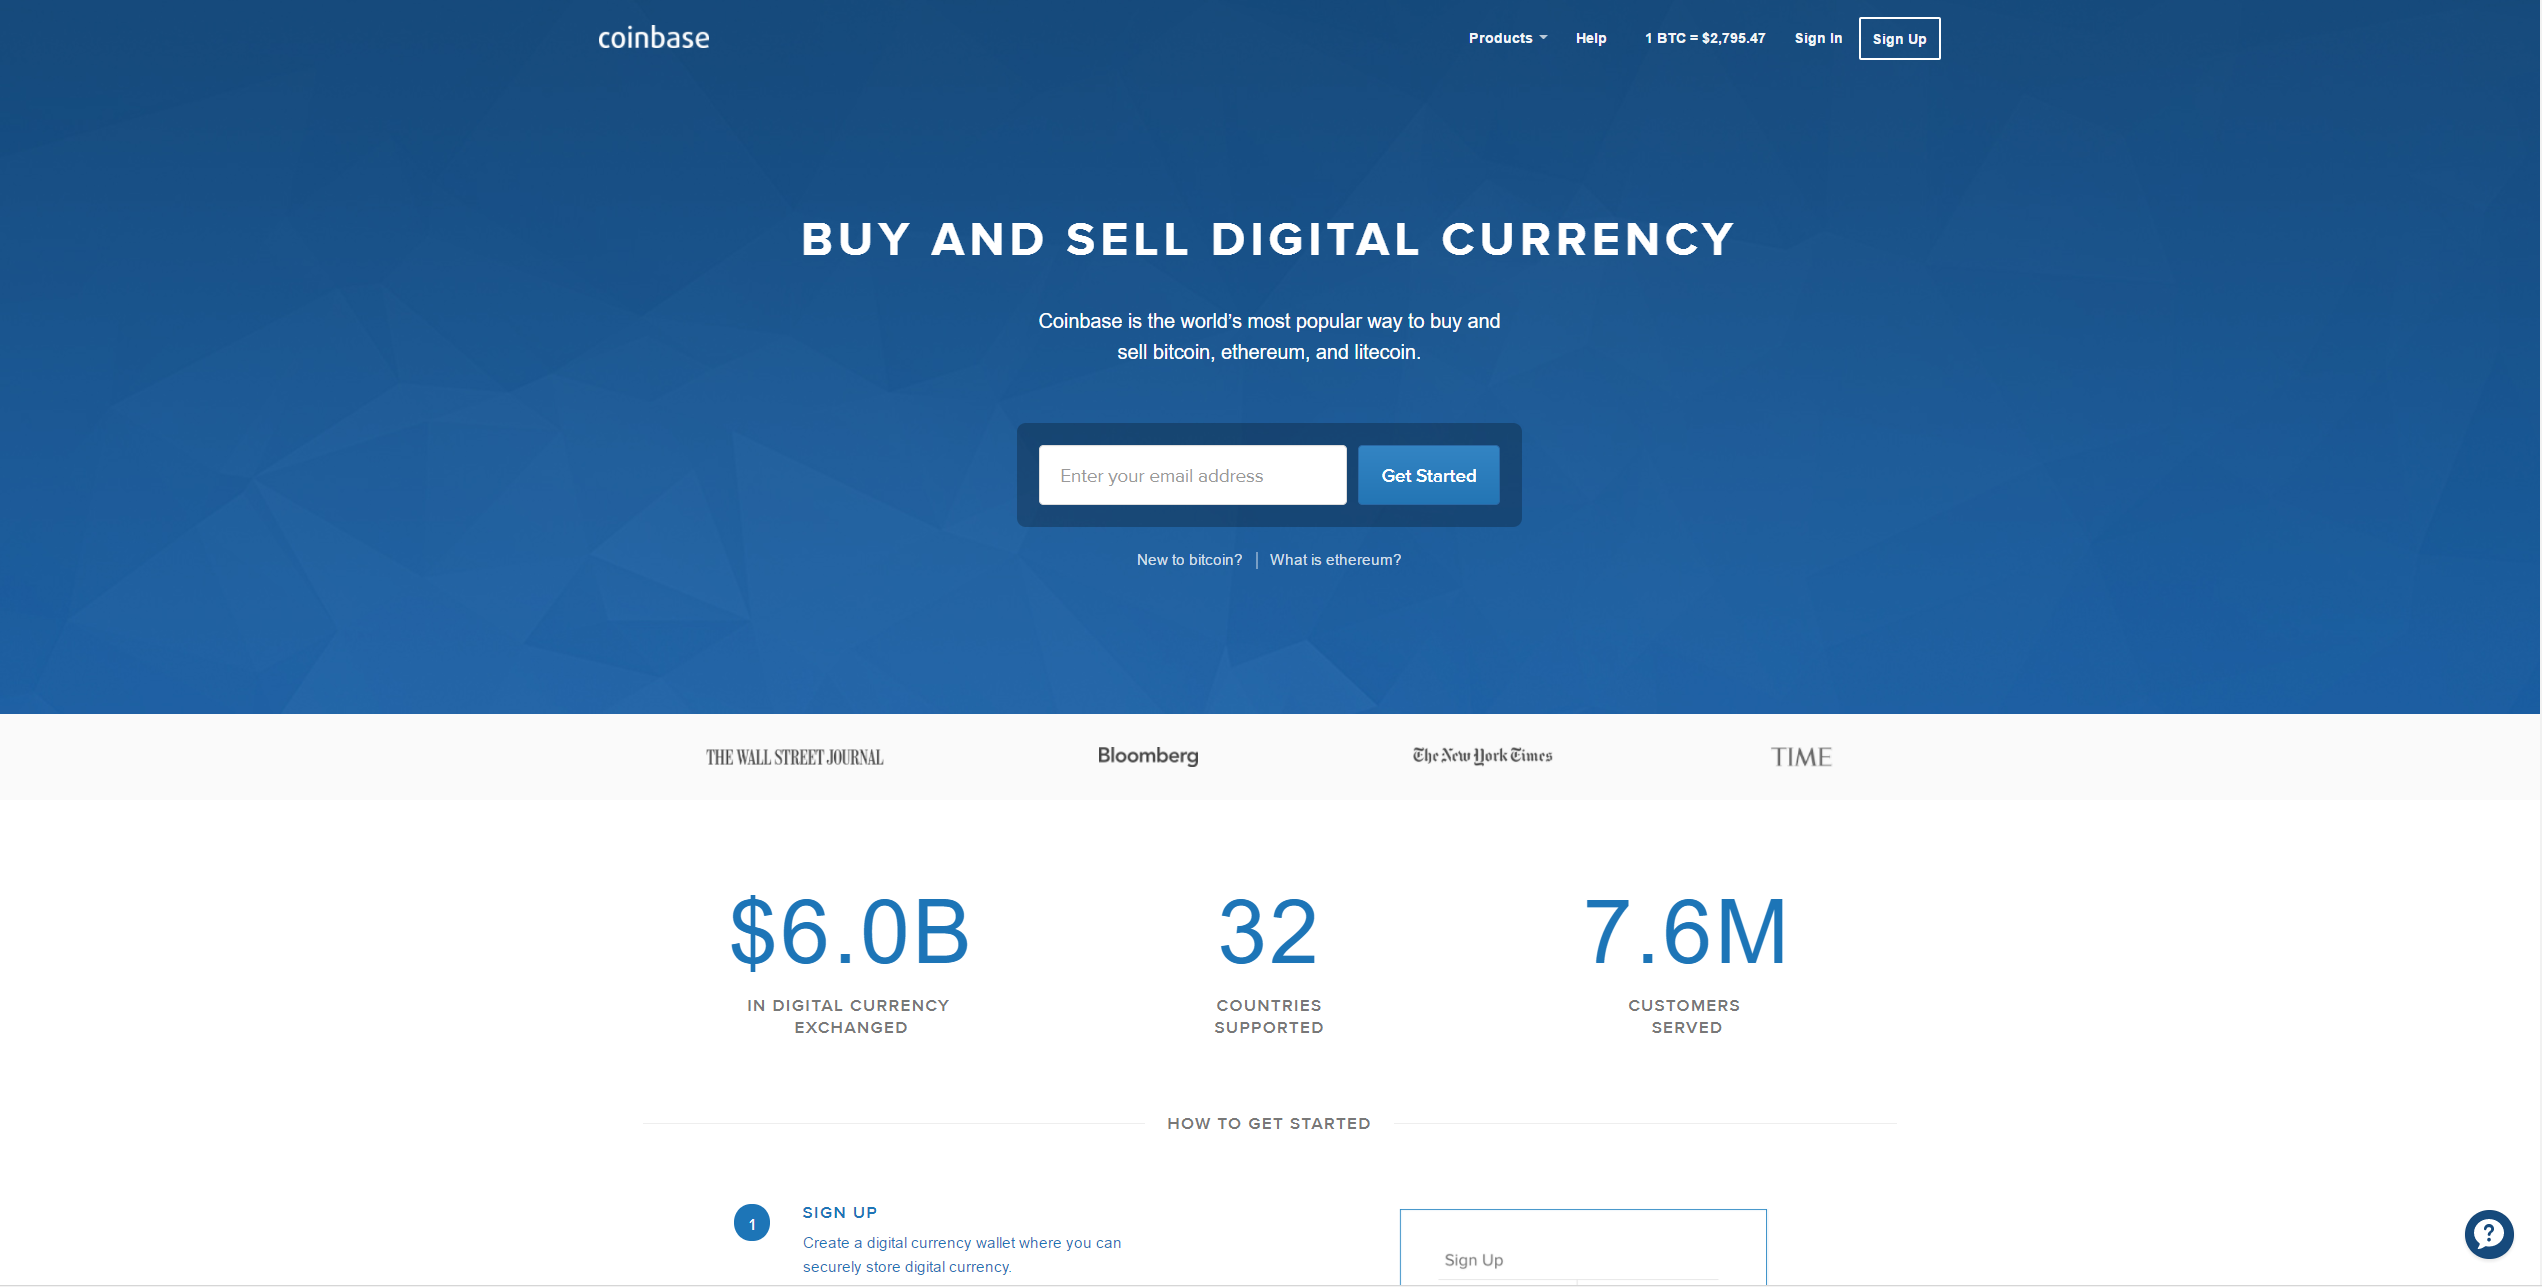 1) Go to Coinbase and follow the instructions to register an account.